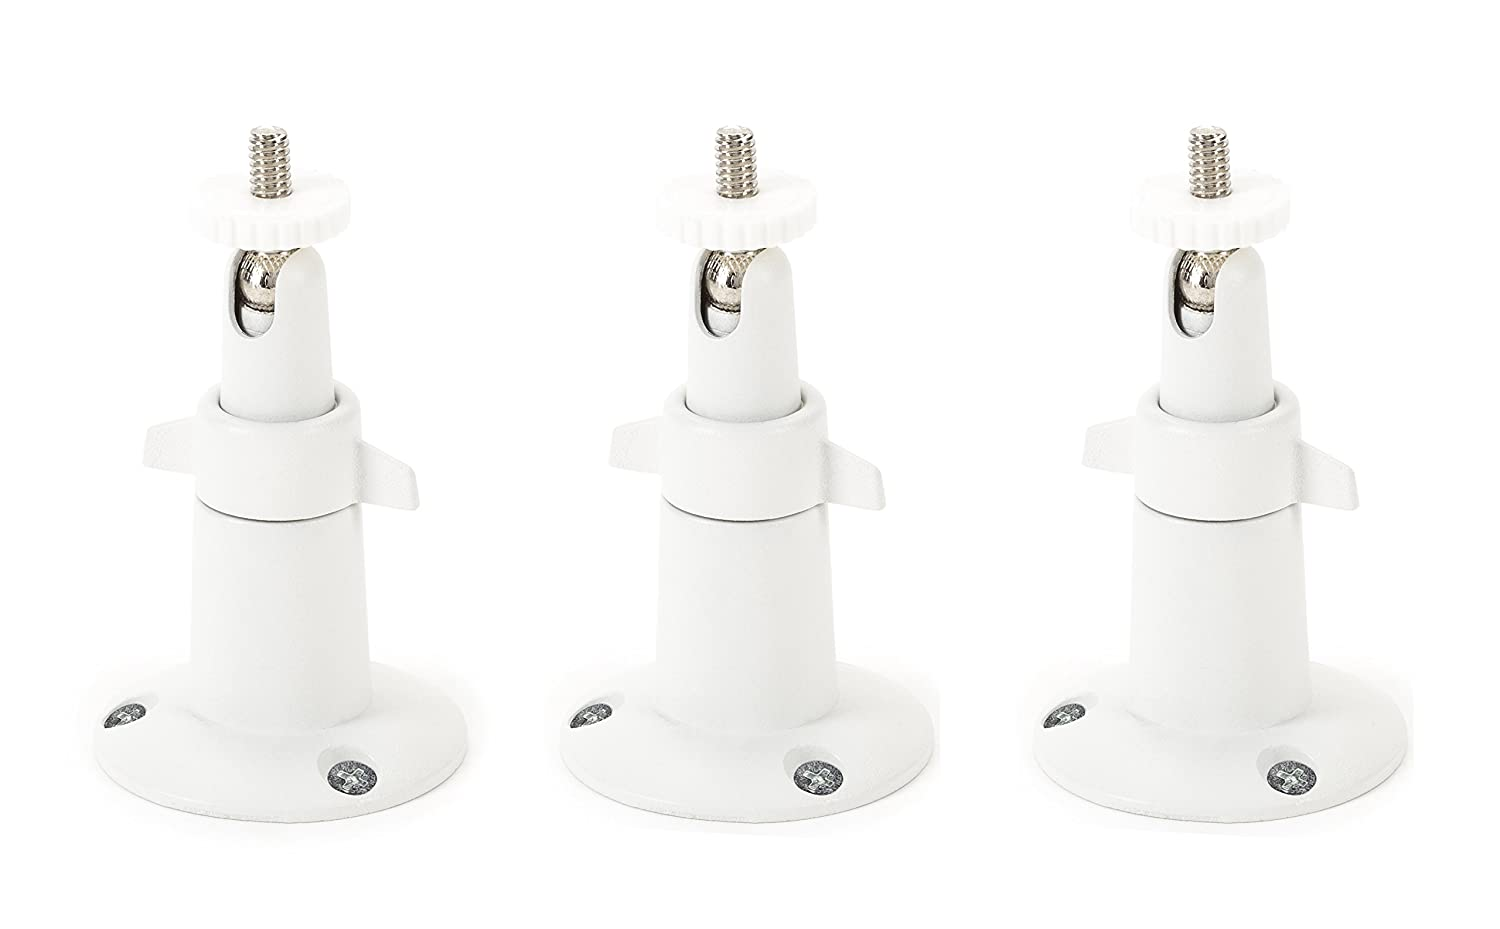 Adjustable Indoor/Outdoor Security Wall Mount for Arlo Pro, Arlo Pro 2, Arlo Ultra, and Other Compatible Models - Extra Flexibility for Your Arlo Camera (3-Pack, White)